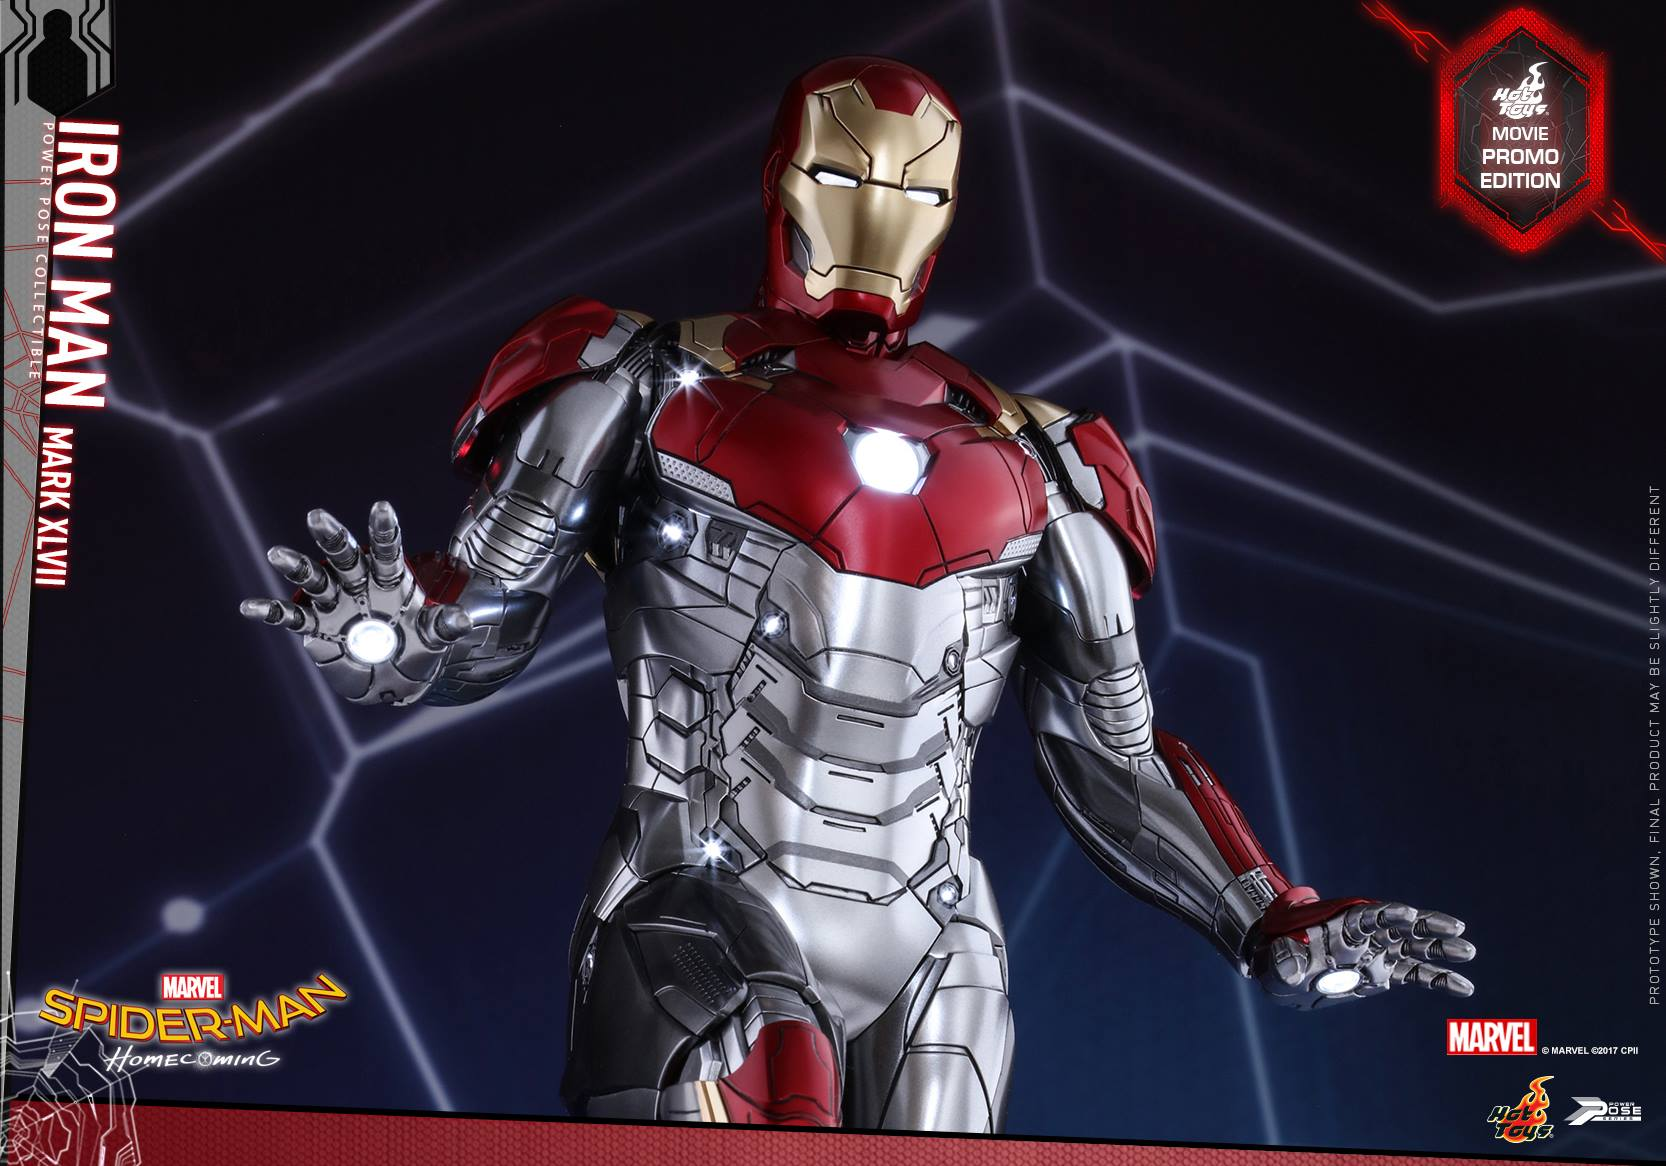 Take A Closer Look At The Mark XLVII Iron Man Suit As It'll